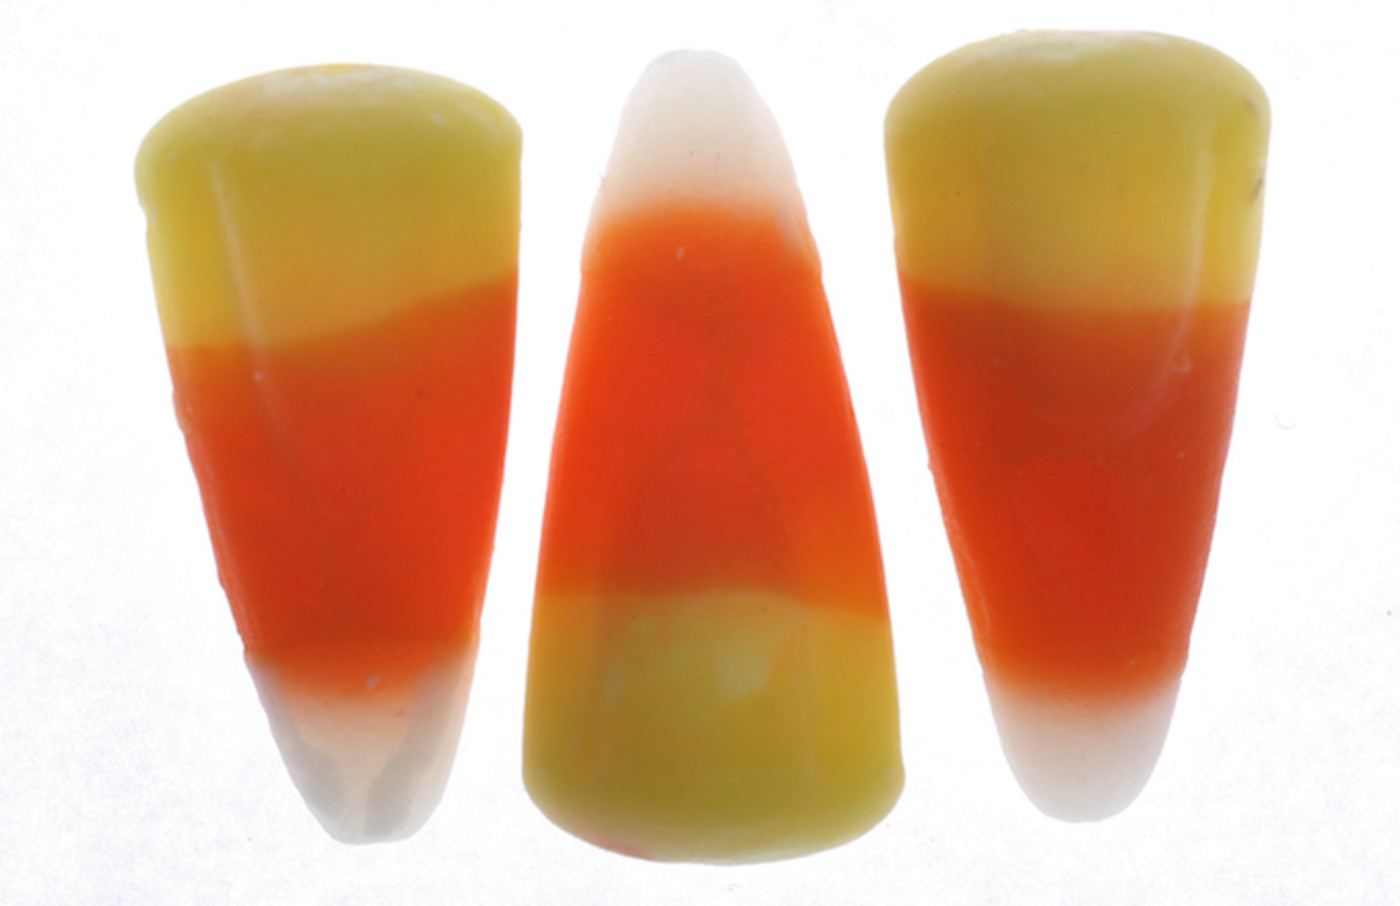 Halloween candy corn for an illustration about the anatomy of a sugar rush.